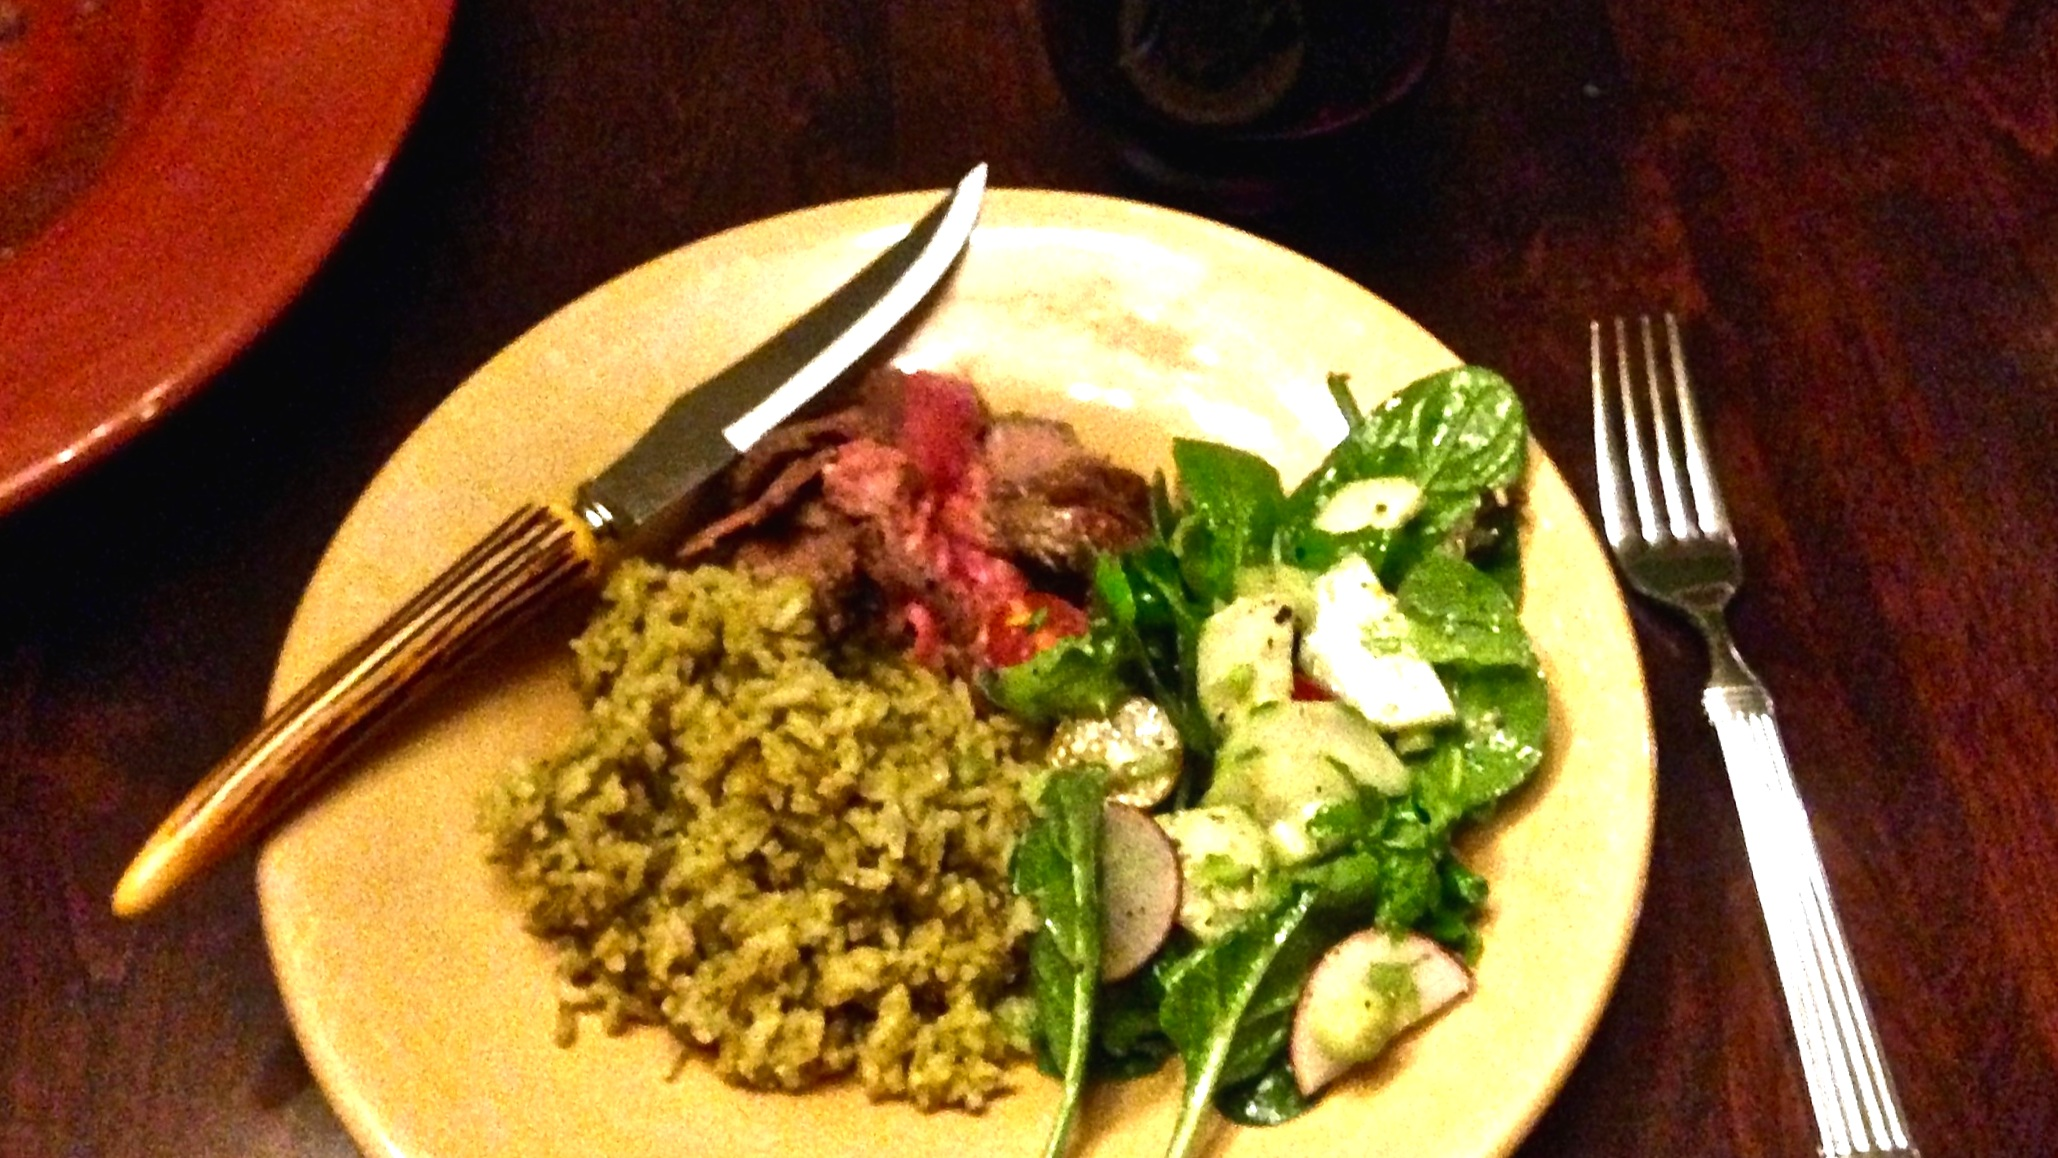 Grilled London Broil with Cilantro Rice and Tossed Green Salad; prepared in Tulsa, OK